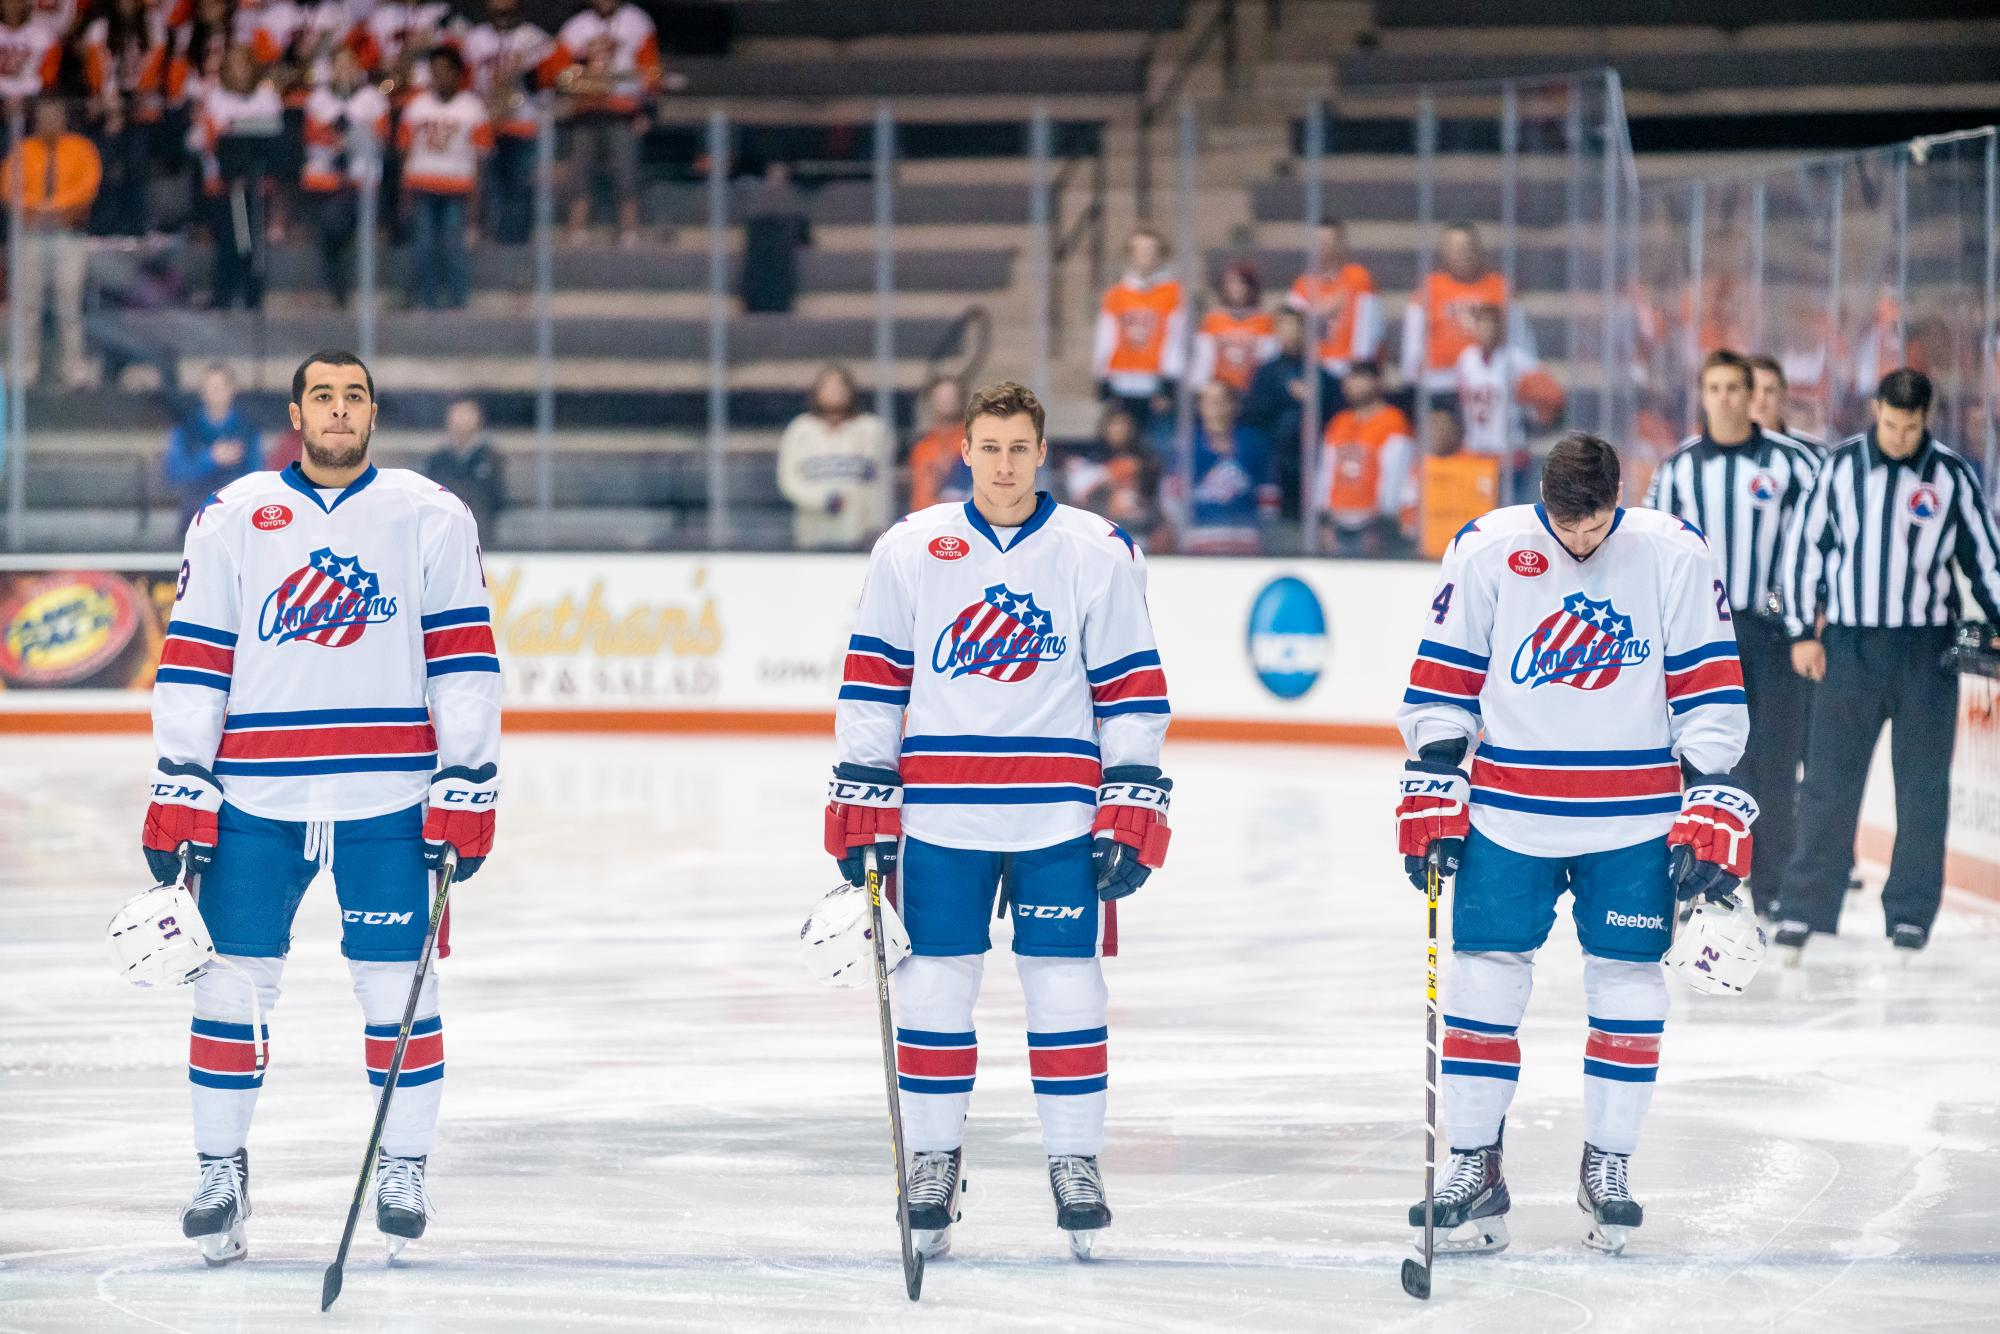 Matt Garbowsky (center) stands on the ice during the National Anthem at the Rochester Americans game at the Gene Polisseni Center on Oct. 11 2015. Photograph by Rob Rauchwerger.